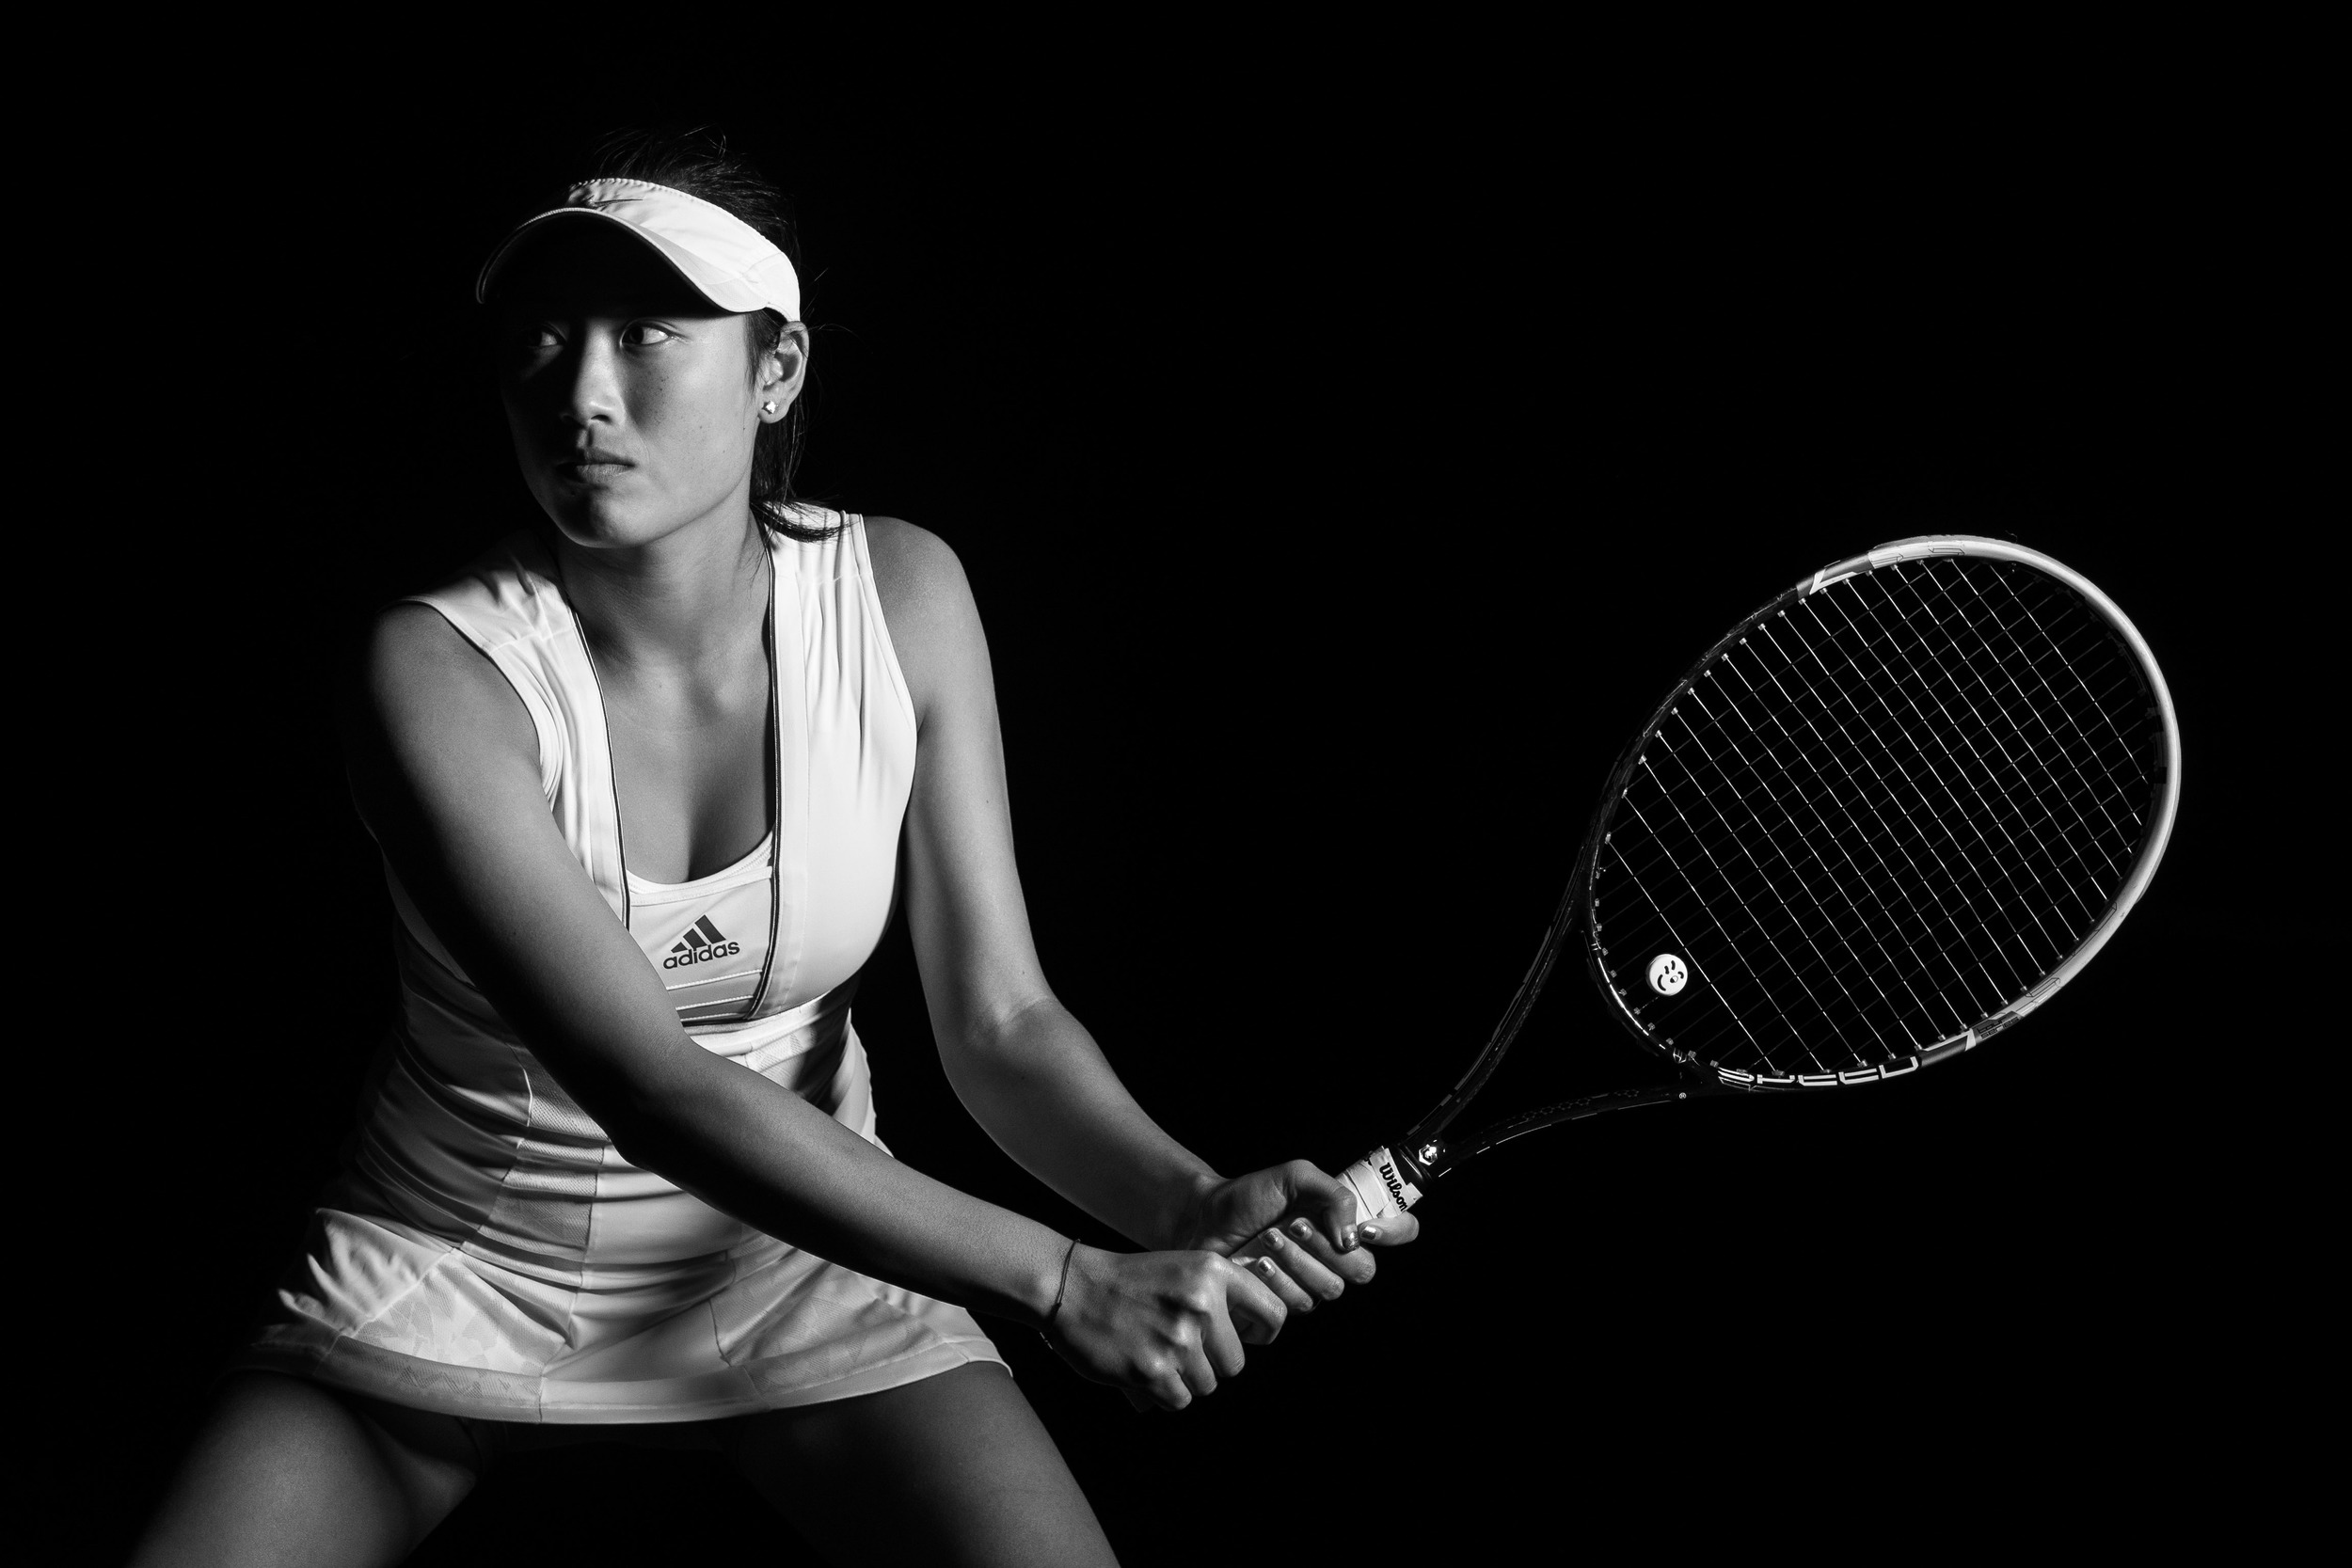 Tennis Shoot-4.jpg